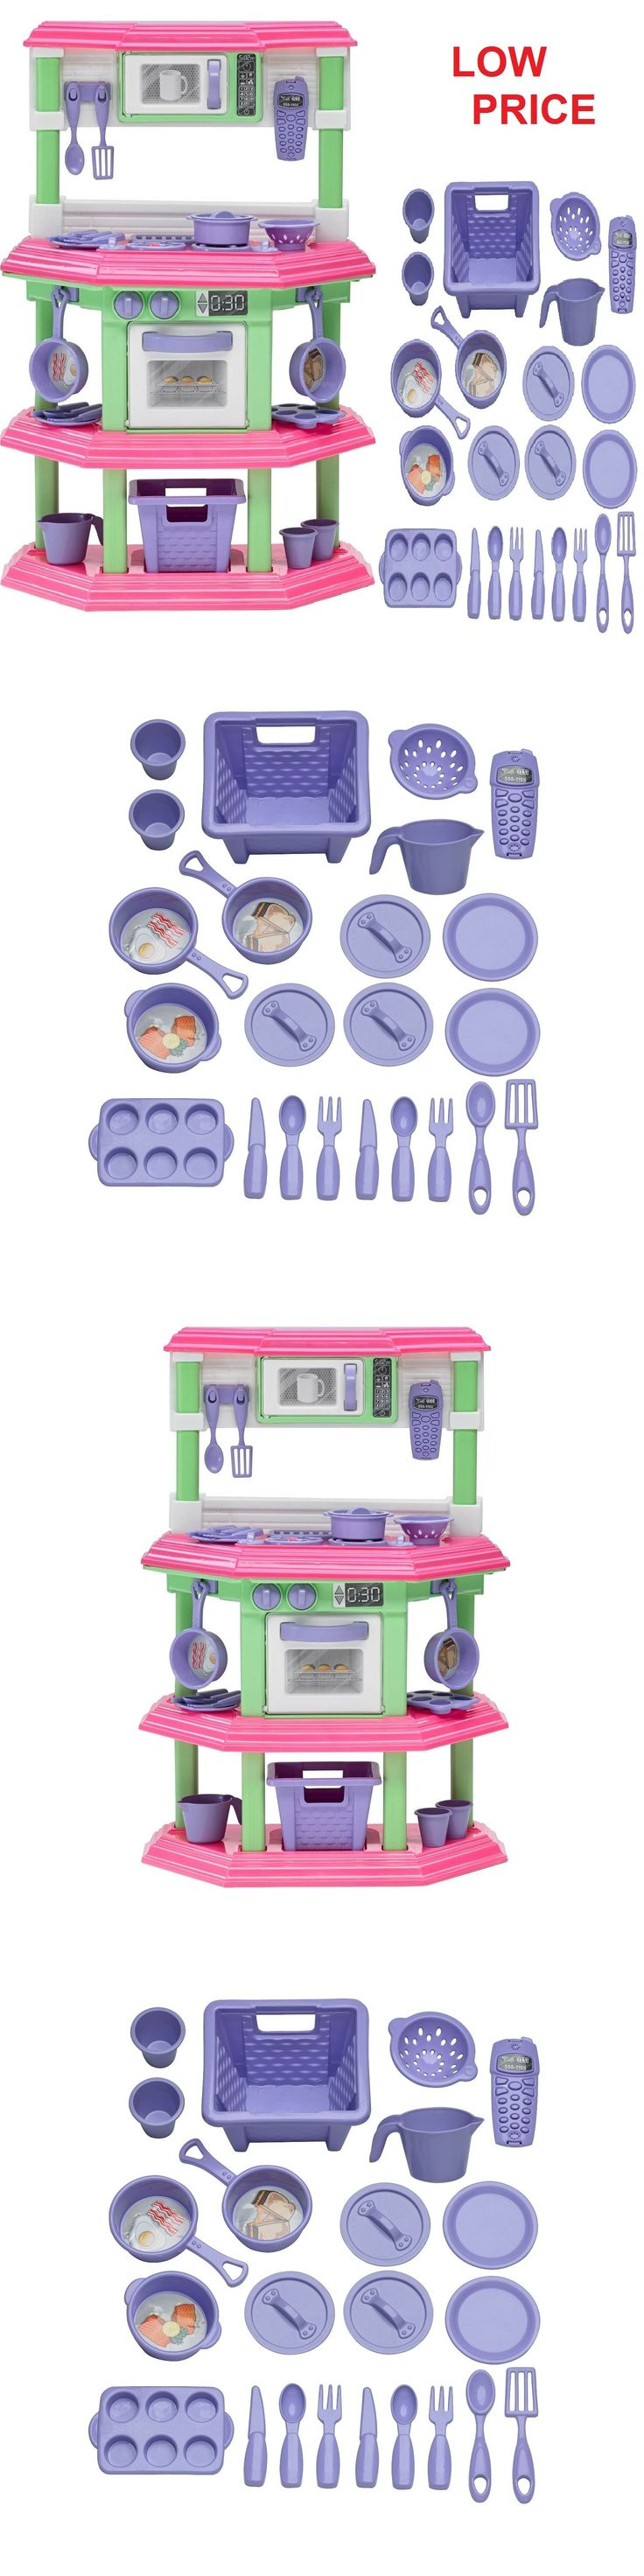 Kitchens 158746: Pretend Kitchen Play Set For Kids Cooking Food Toy Plastic Toddler Girl Set Kit -> BUY IT NOW ONLY: $35.95 on eBay!